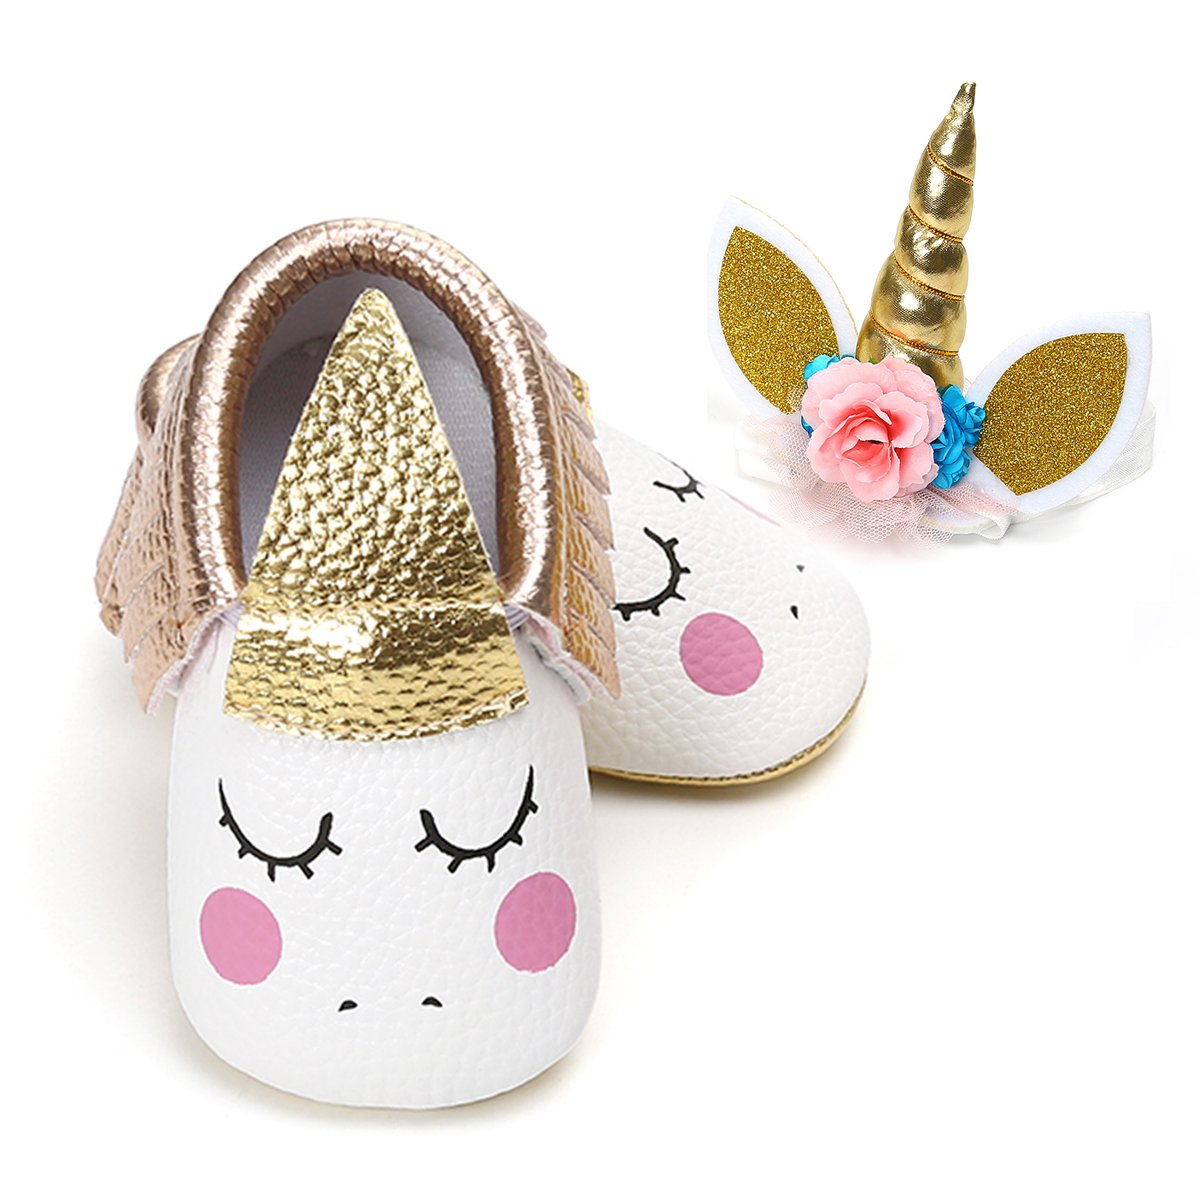 LIVEBOX Unisex Baby Premium Soft Sole Infant Toddler Prewalker Anti-Slip Dress Crib Shoes with Free Baby Headband for Attend Wedding Birthday Party Events (Champagne, L)